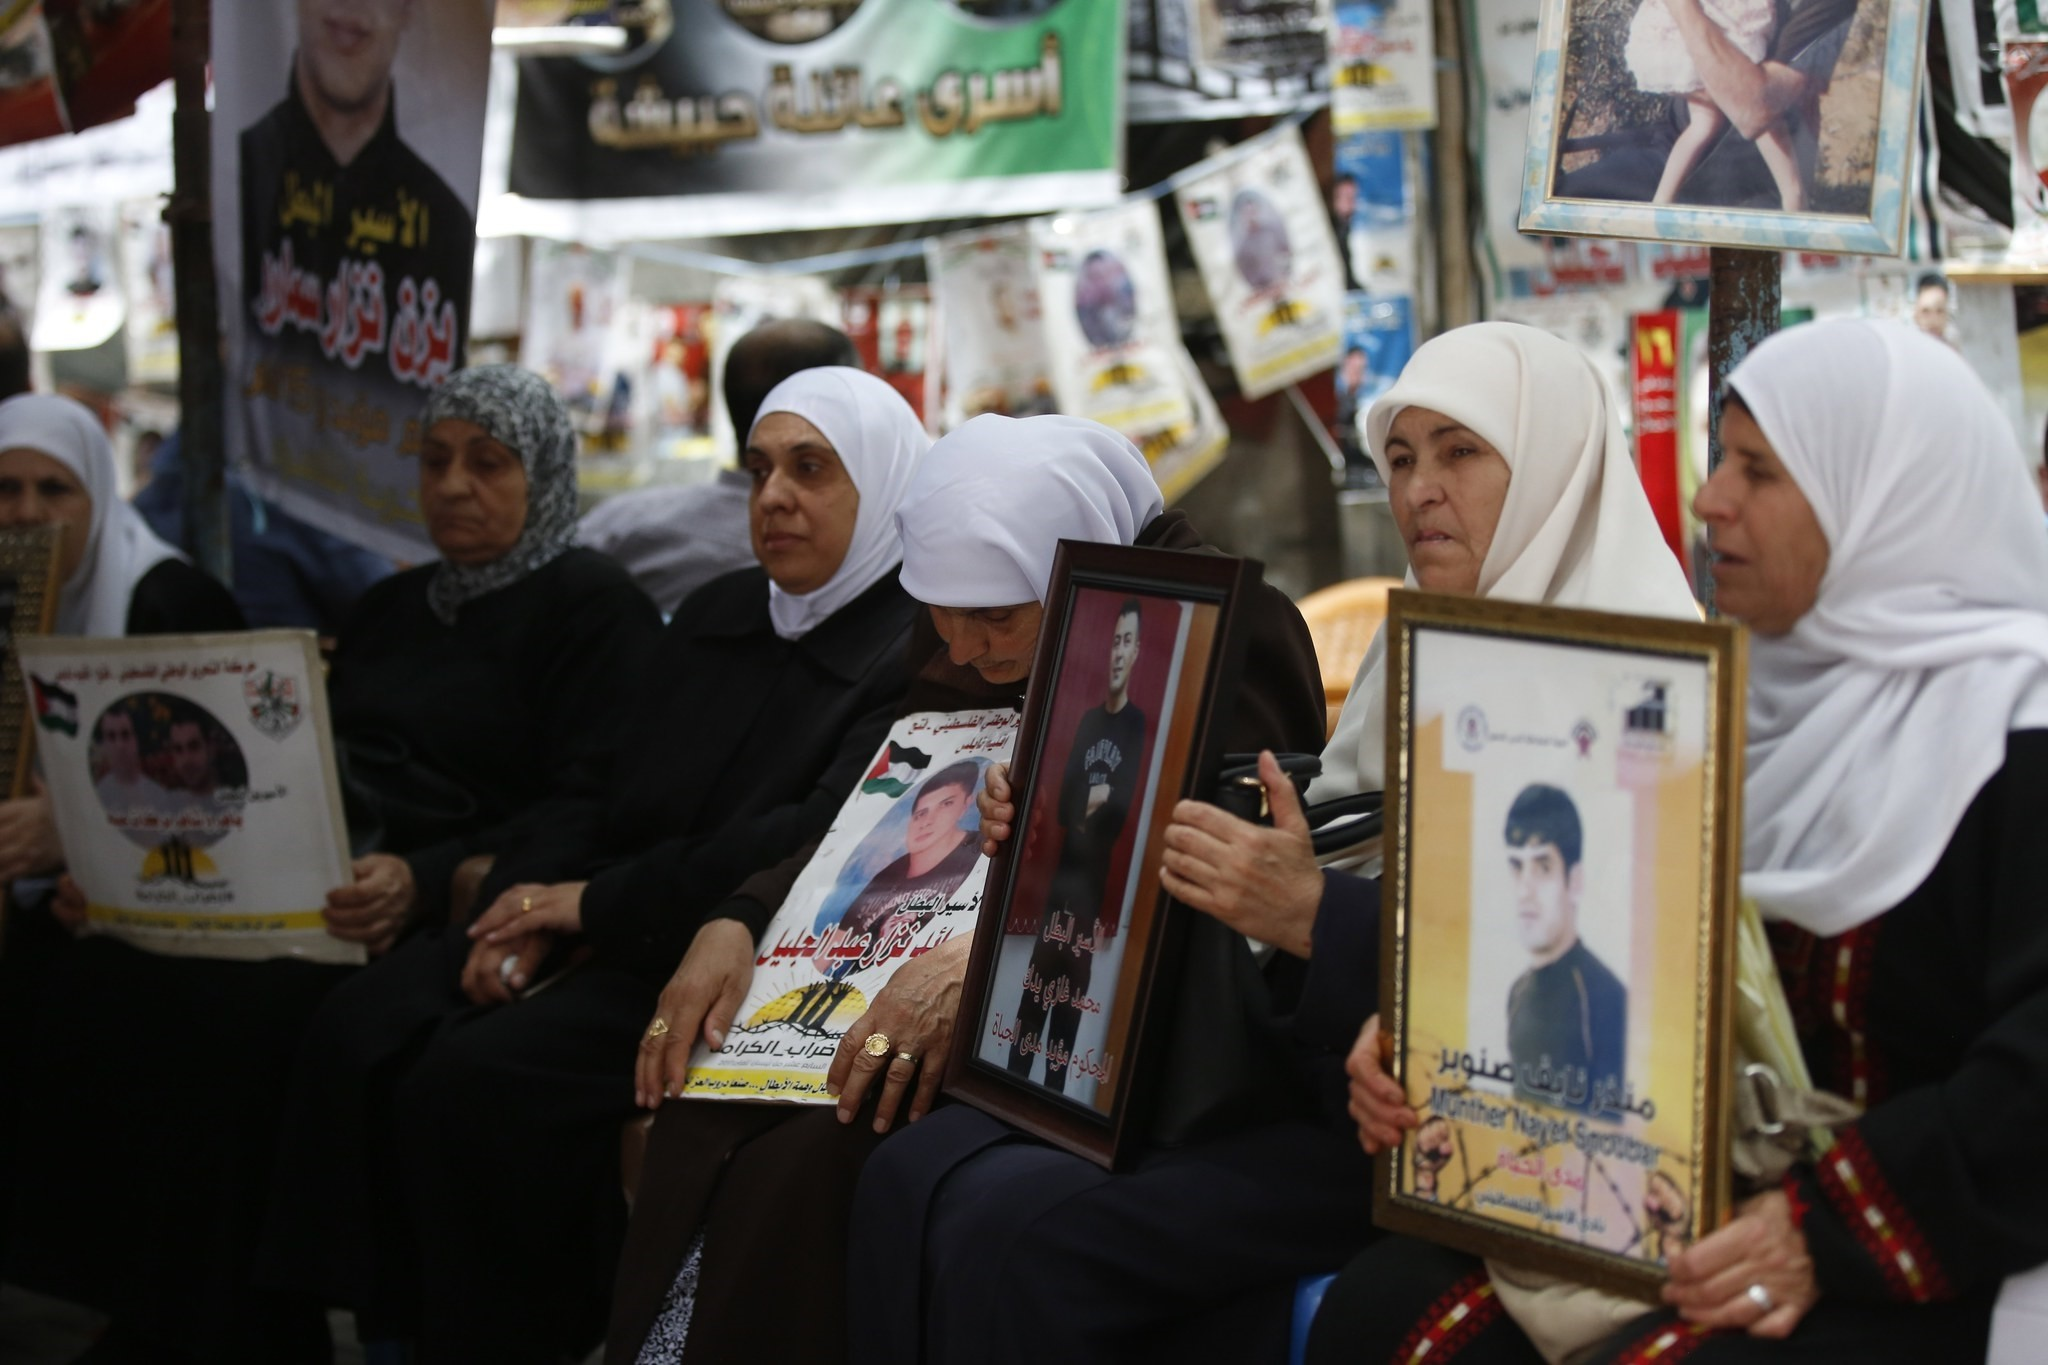 Palestinian mothers hold pictures of their sons held in Israeli jail during a protest in solidarity with prisoners on hunger strike in Israeli jails, in Nablus, 14 May 2017. (EPA Photo)